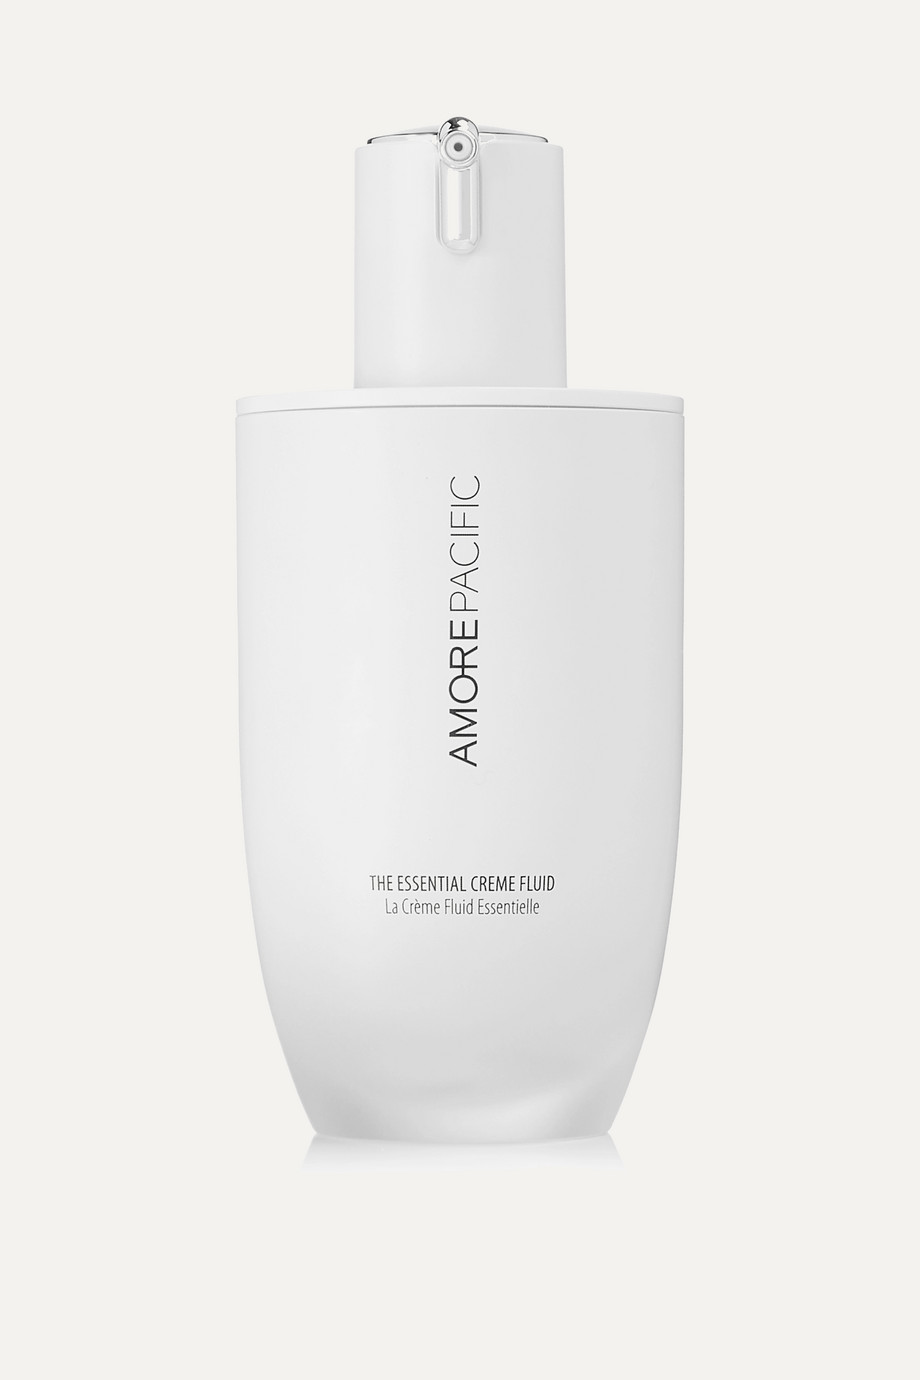 AMOREPACIFIC The Essential Creme Fluid, 90ml